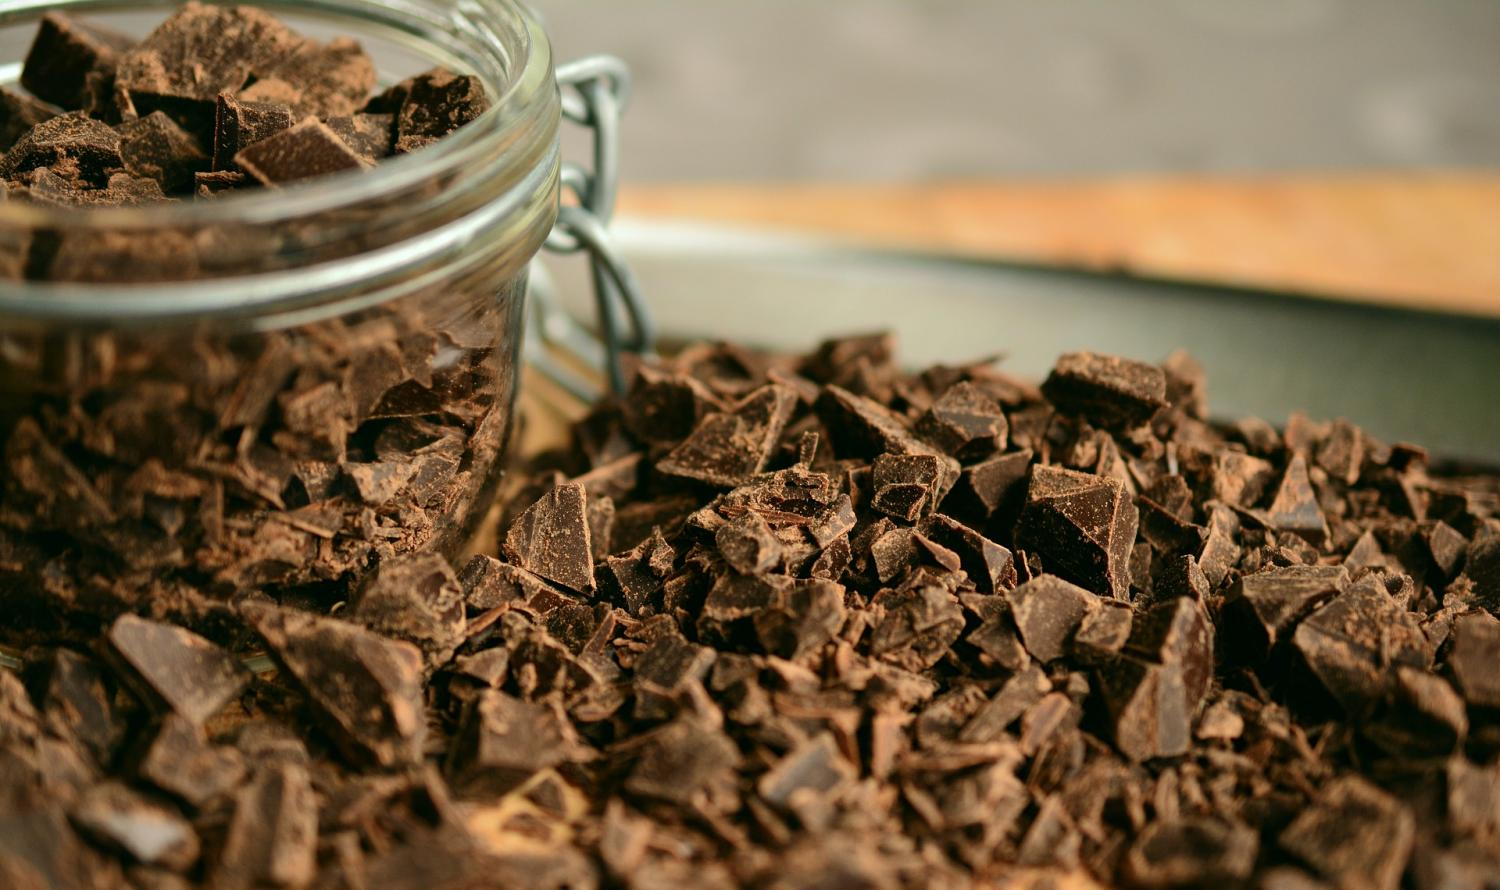 Starting the Day Off with Chocolate Could Have Unexpected Benefits